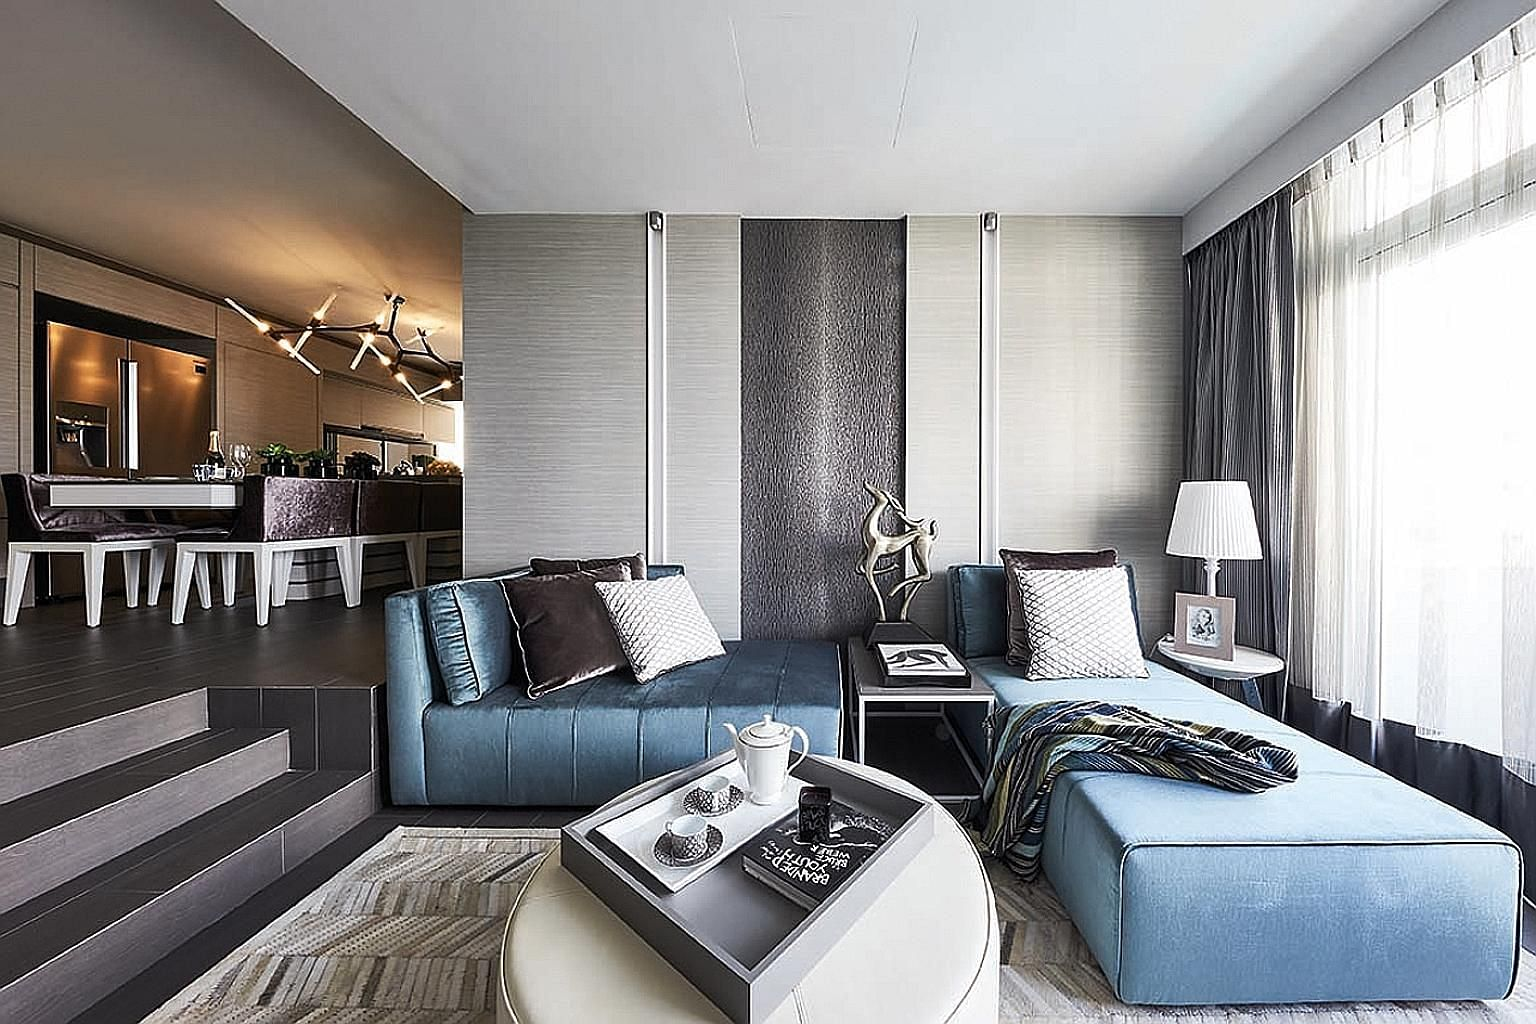 In this bedroom, most of the wall space has been turned into stylishly concealed storage. The guest room's built-in storage is wrapped around the daybed, which is the space's centrepiece and is enhanced by the feature wall. The bathtub that was previ